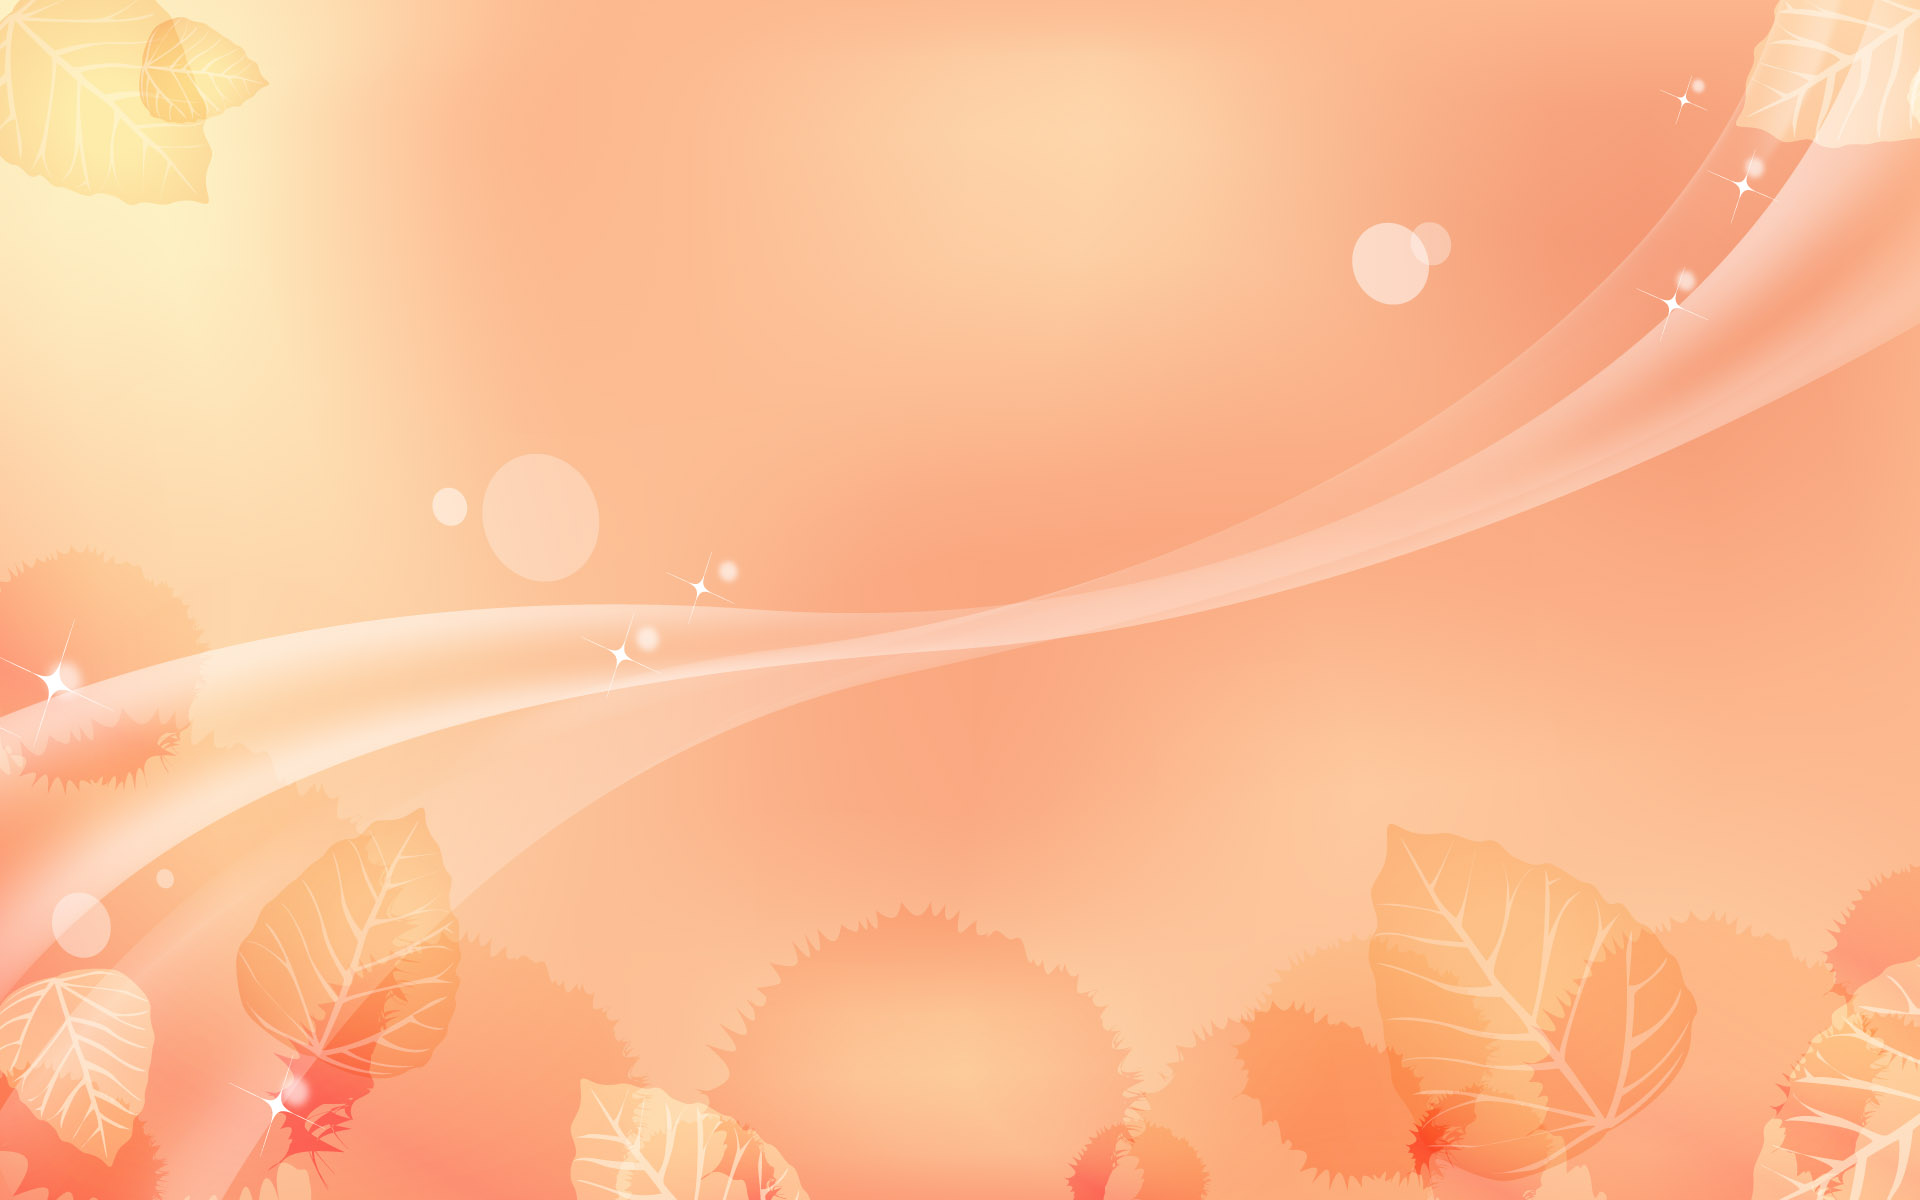 Colorful high-resolution background 24359